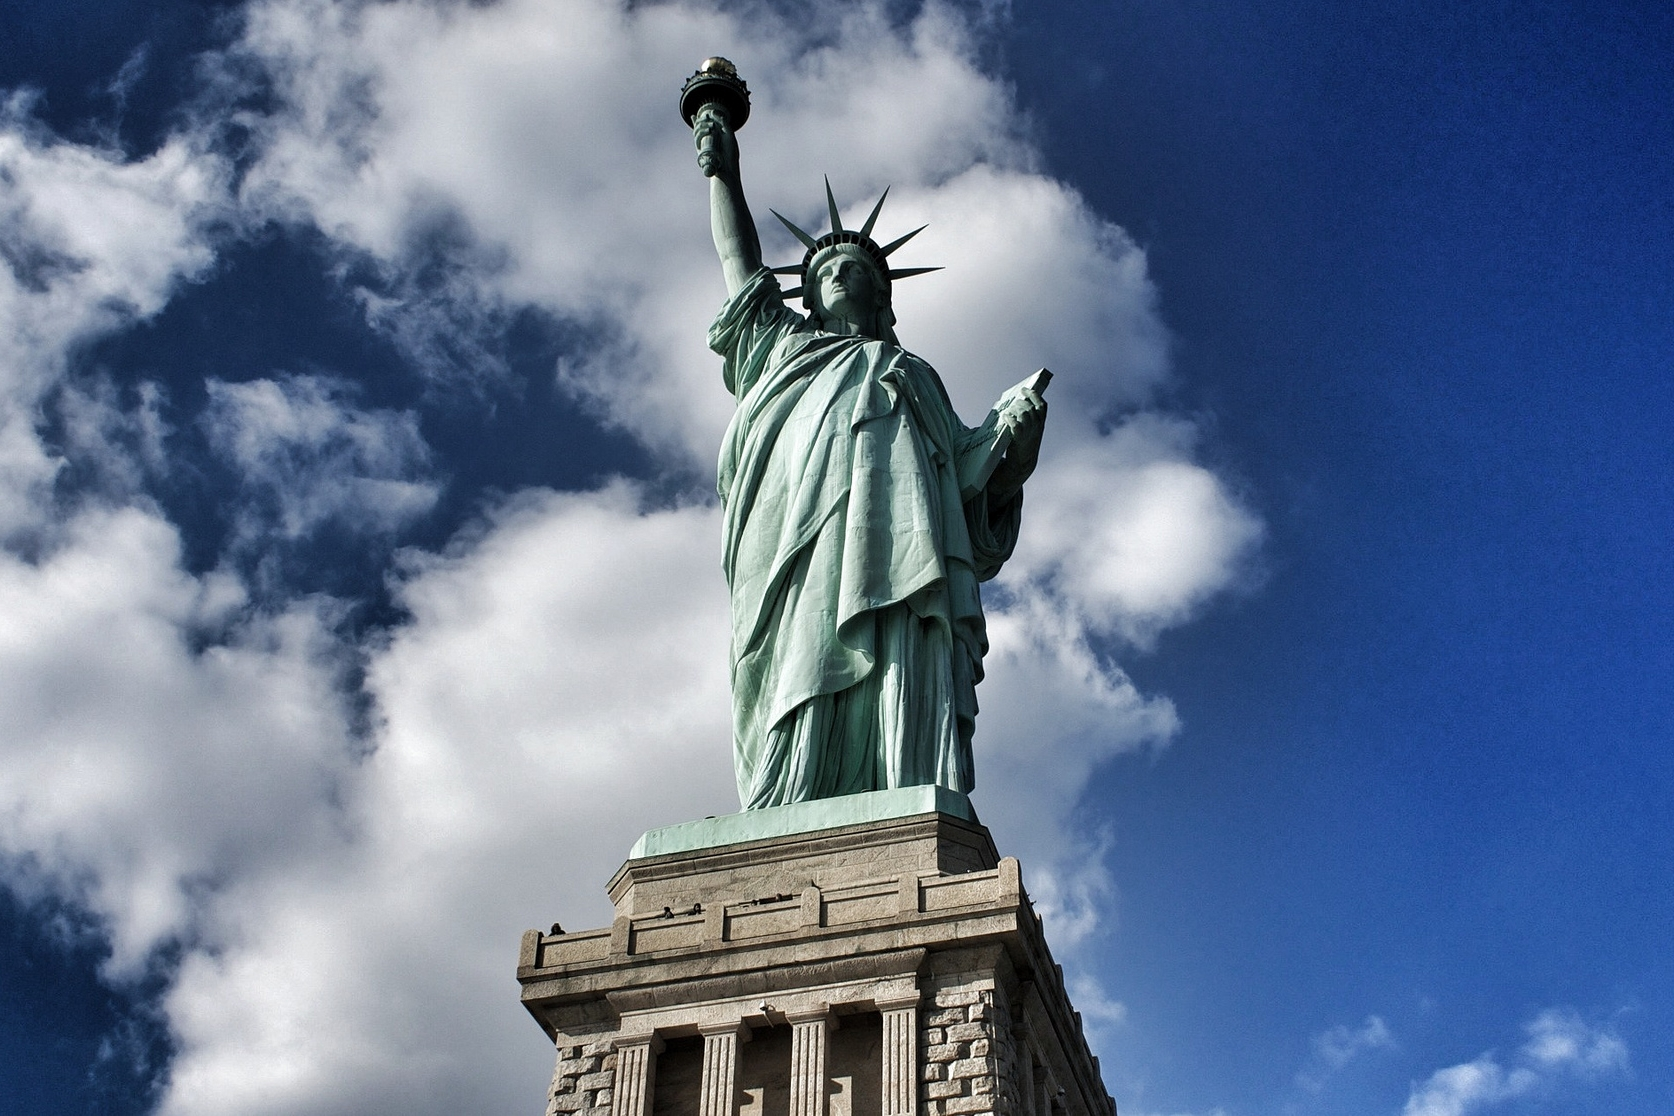 new liberty middle eastern singles Those wagging their fingers at critics of president obama's plan to bring thousands of middle east refugees to the america have an irresistible new talking point: lady liberty was muslim.